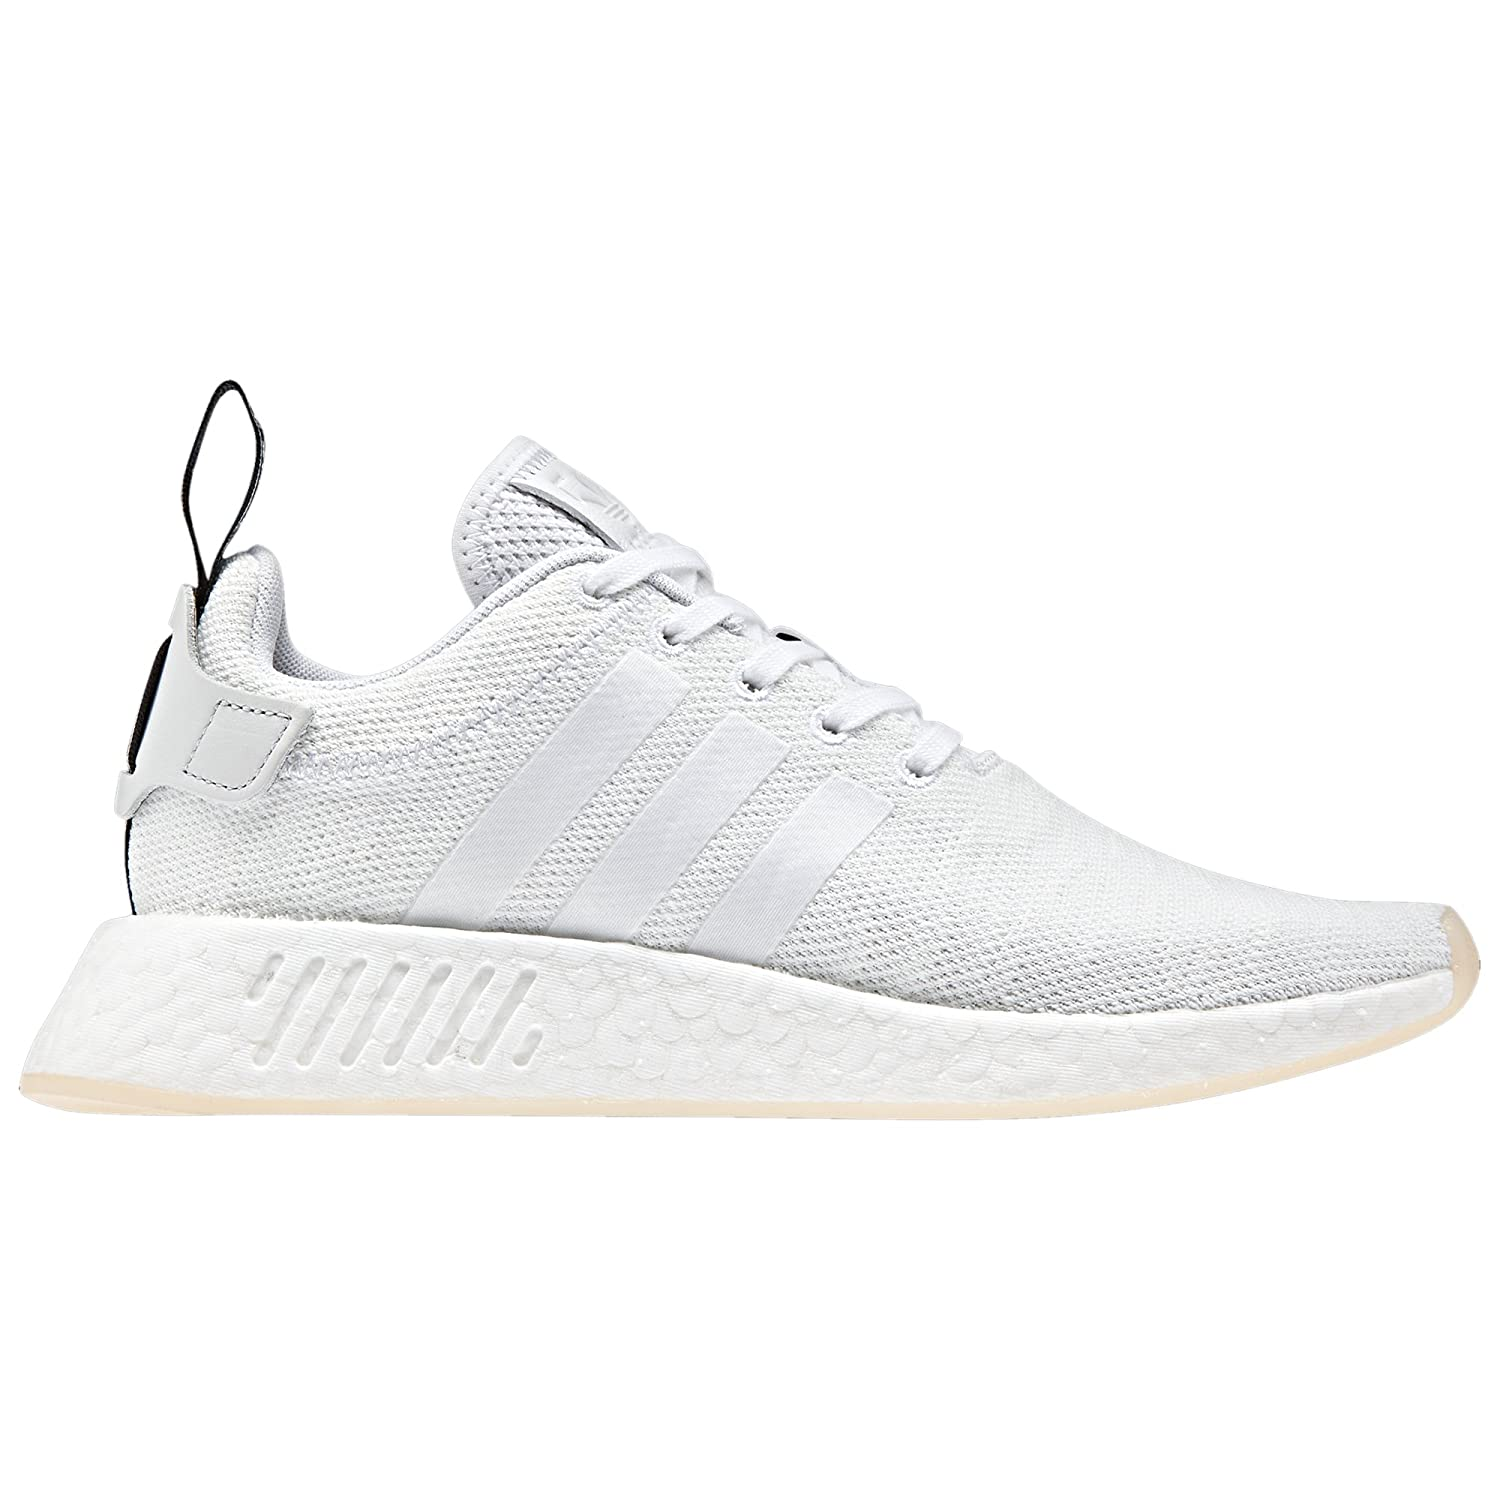 adidas Originals Women's NMD_r2 W Sneaker B078T2RPTH 6 B(M) Black US|Crystal White, White, Core Black B(M) c984dc